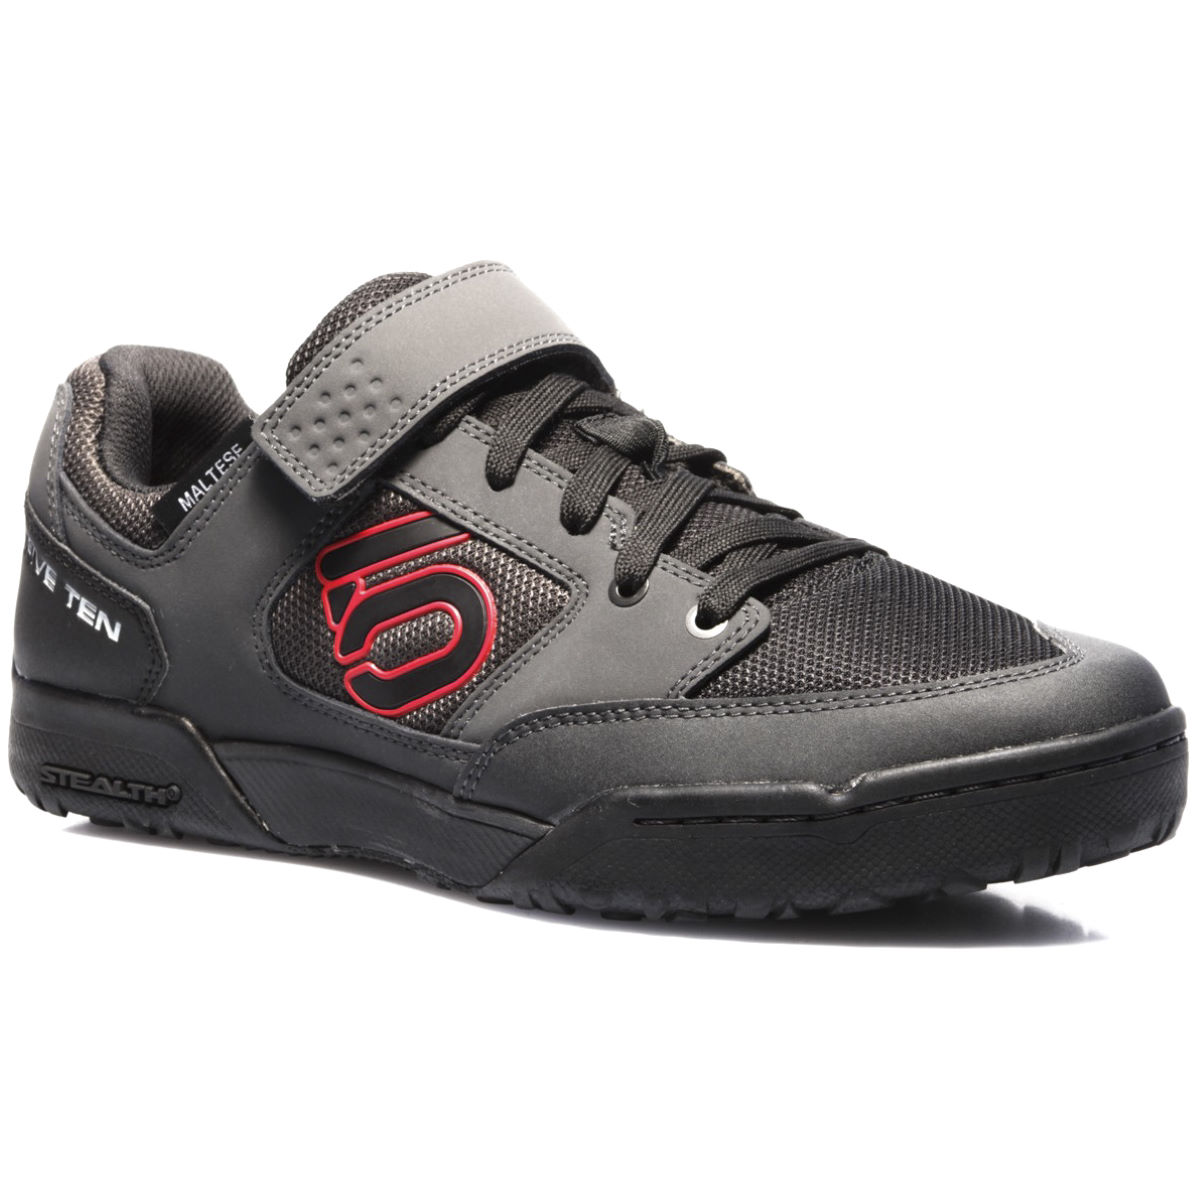 Chaussures VTT Five Ten Maltese Falcon SPD - EU 47 Carbon - Red